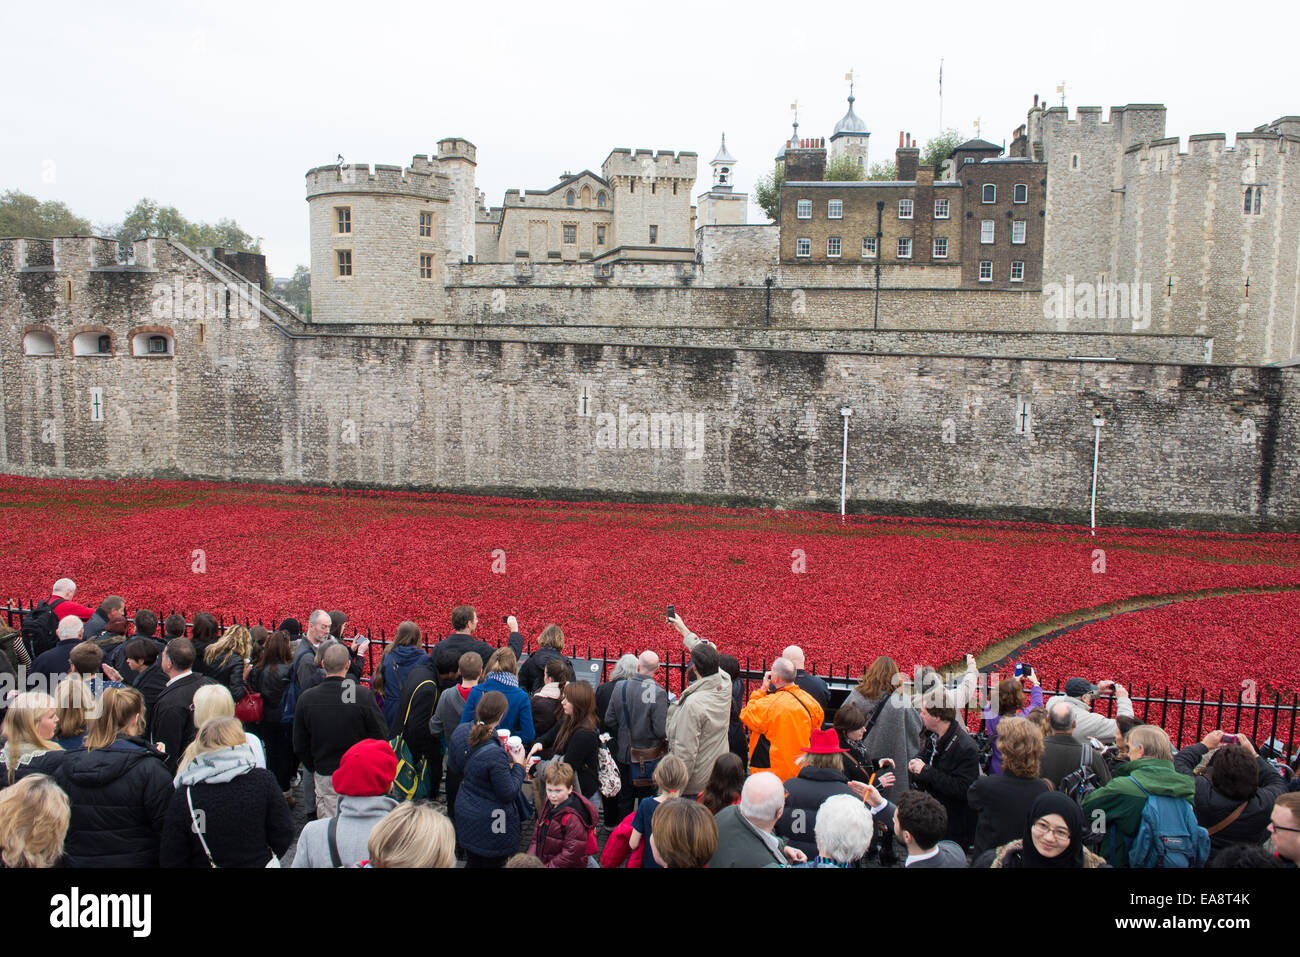 Tower of London, London, UK. 9th November 2014. The crowds fill the area around the Tower of London to look at the - Stock Image